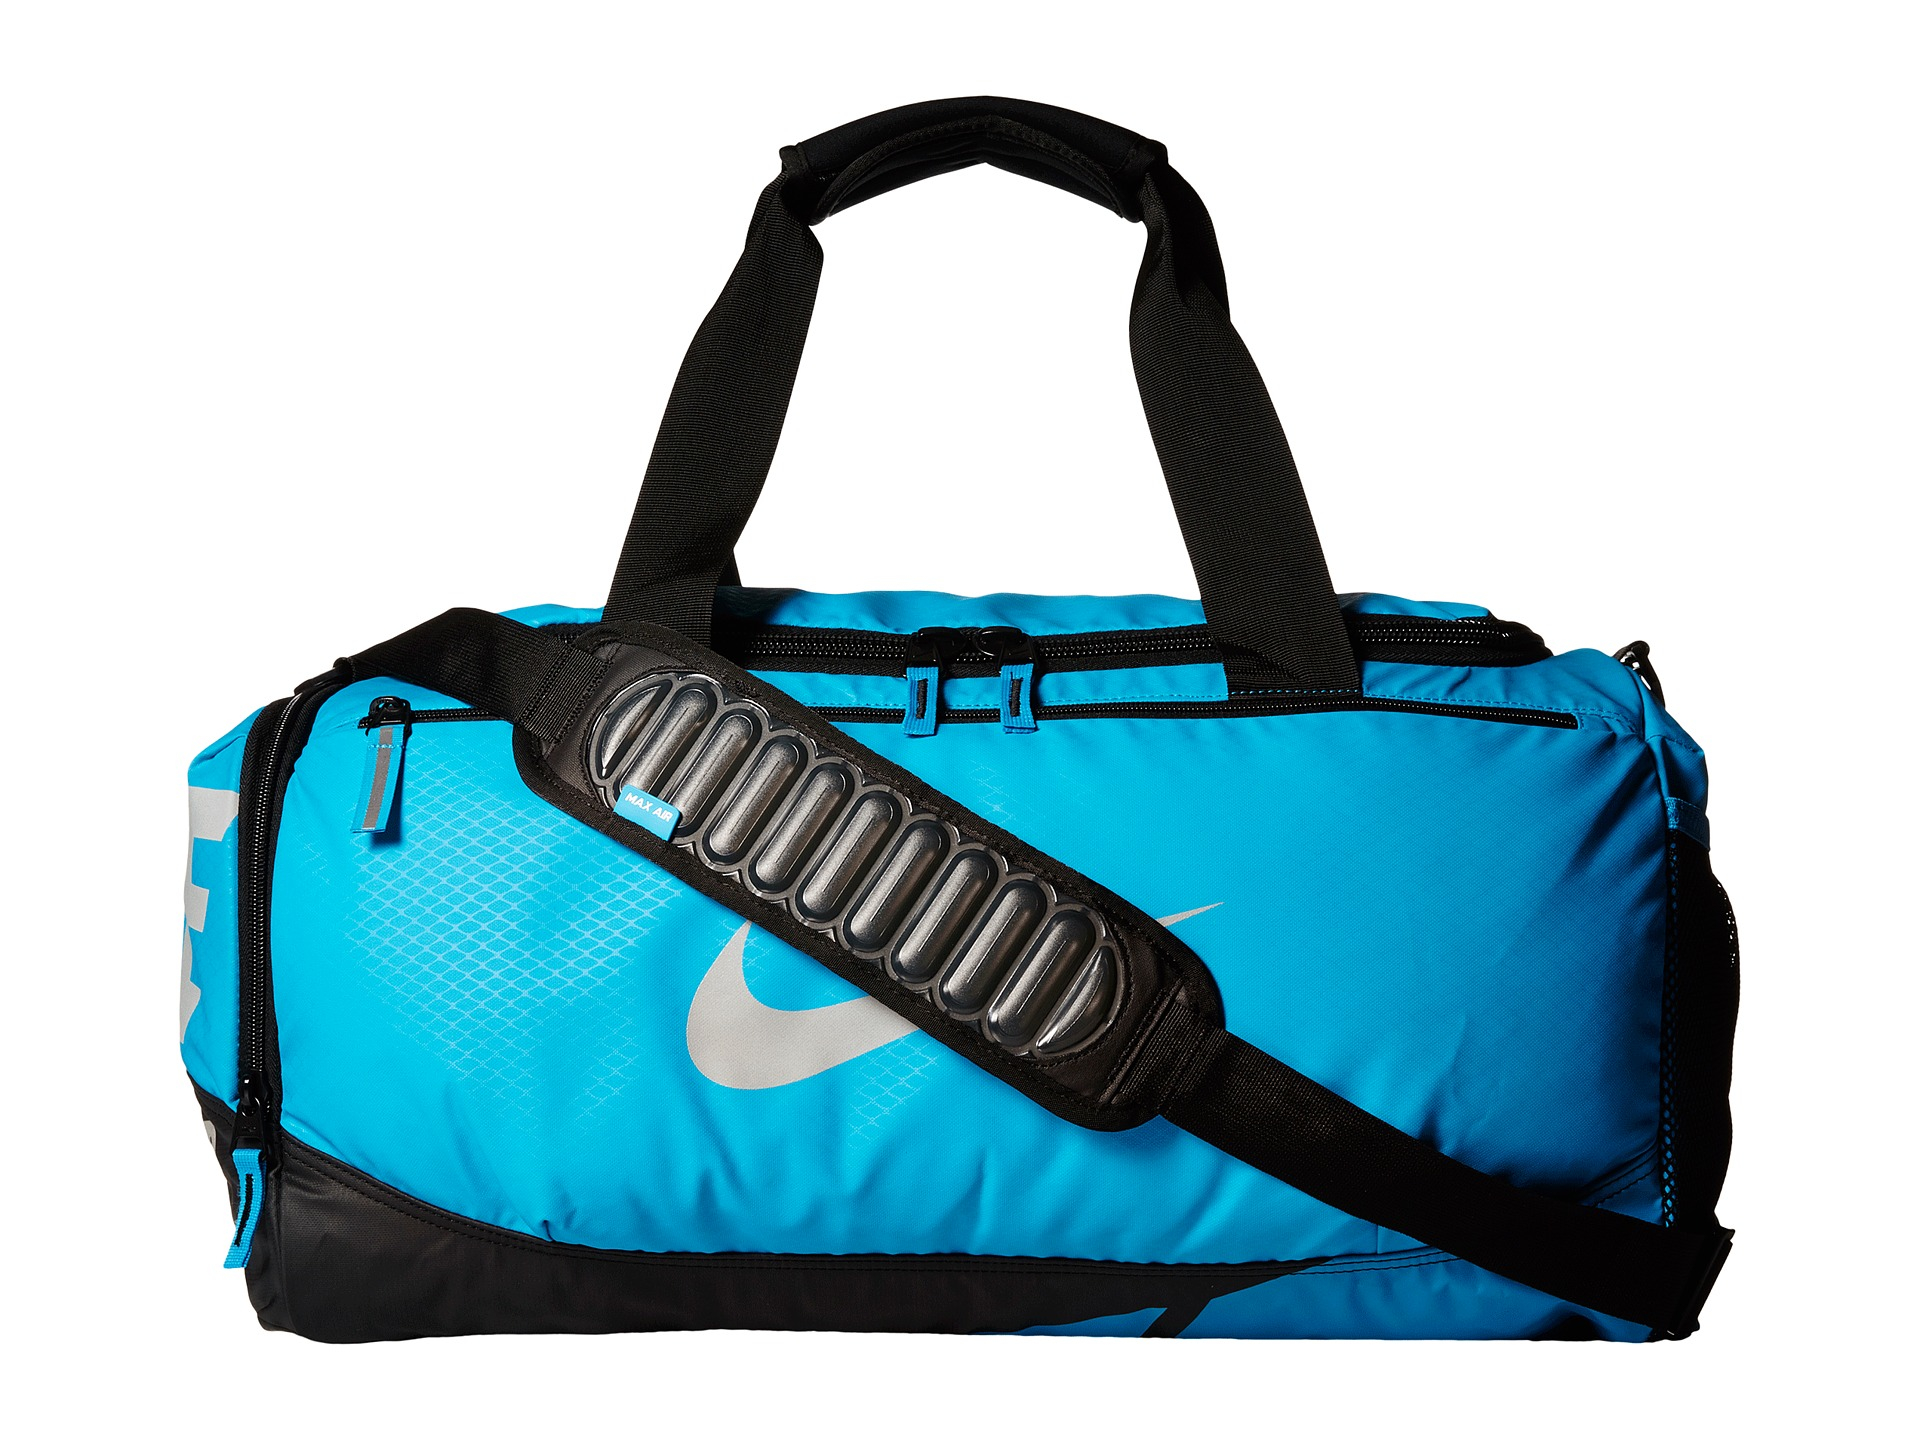 nike air max vapor duffel bag blue